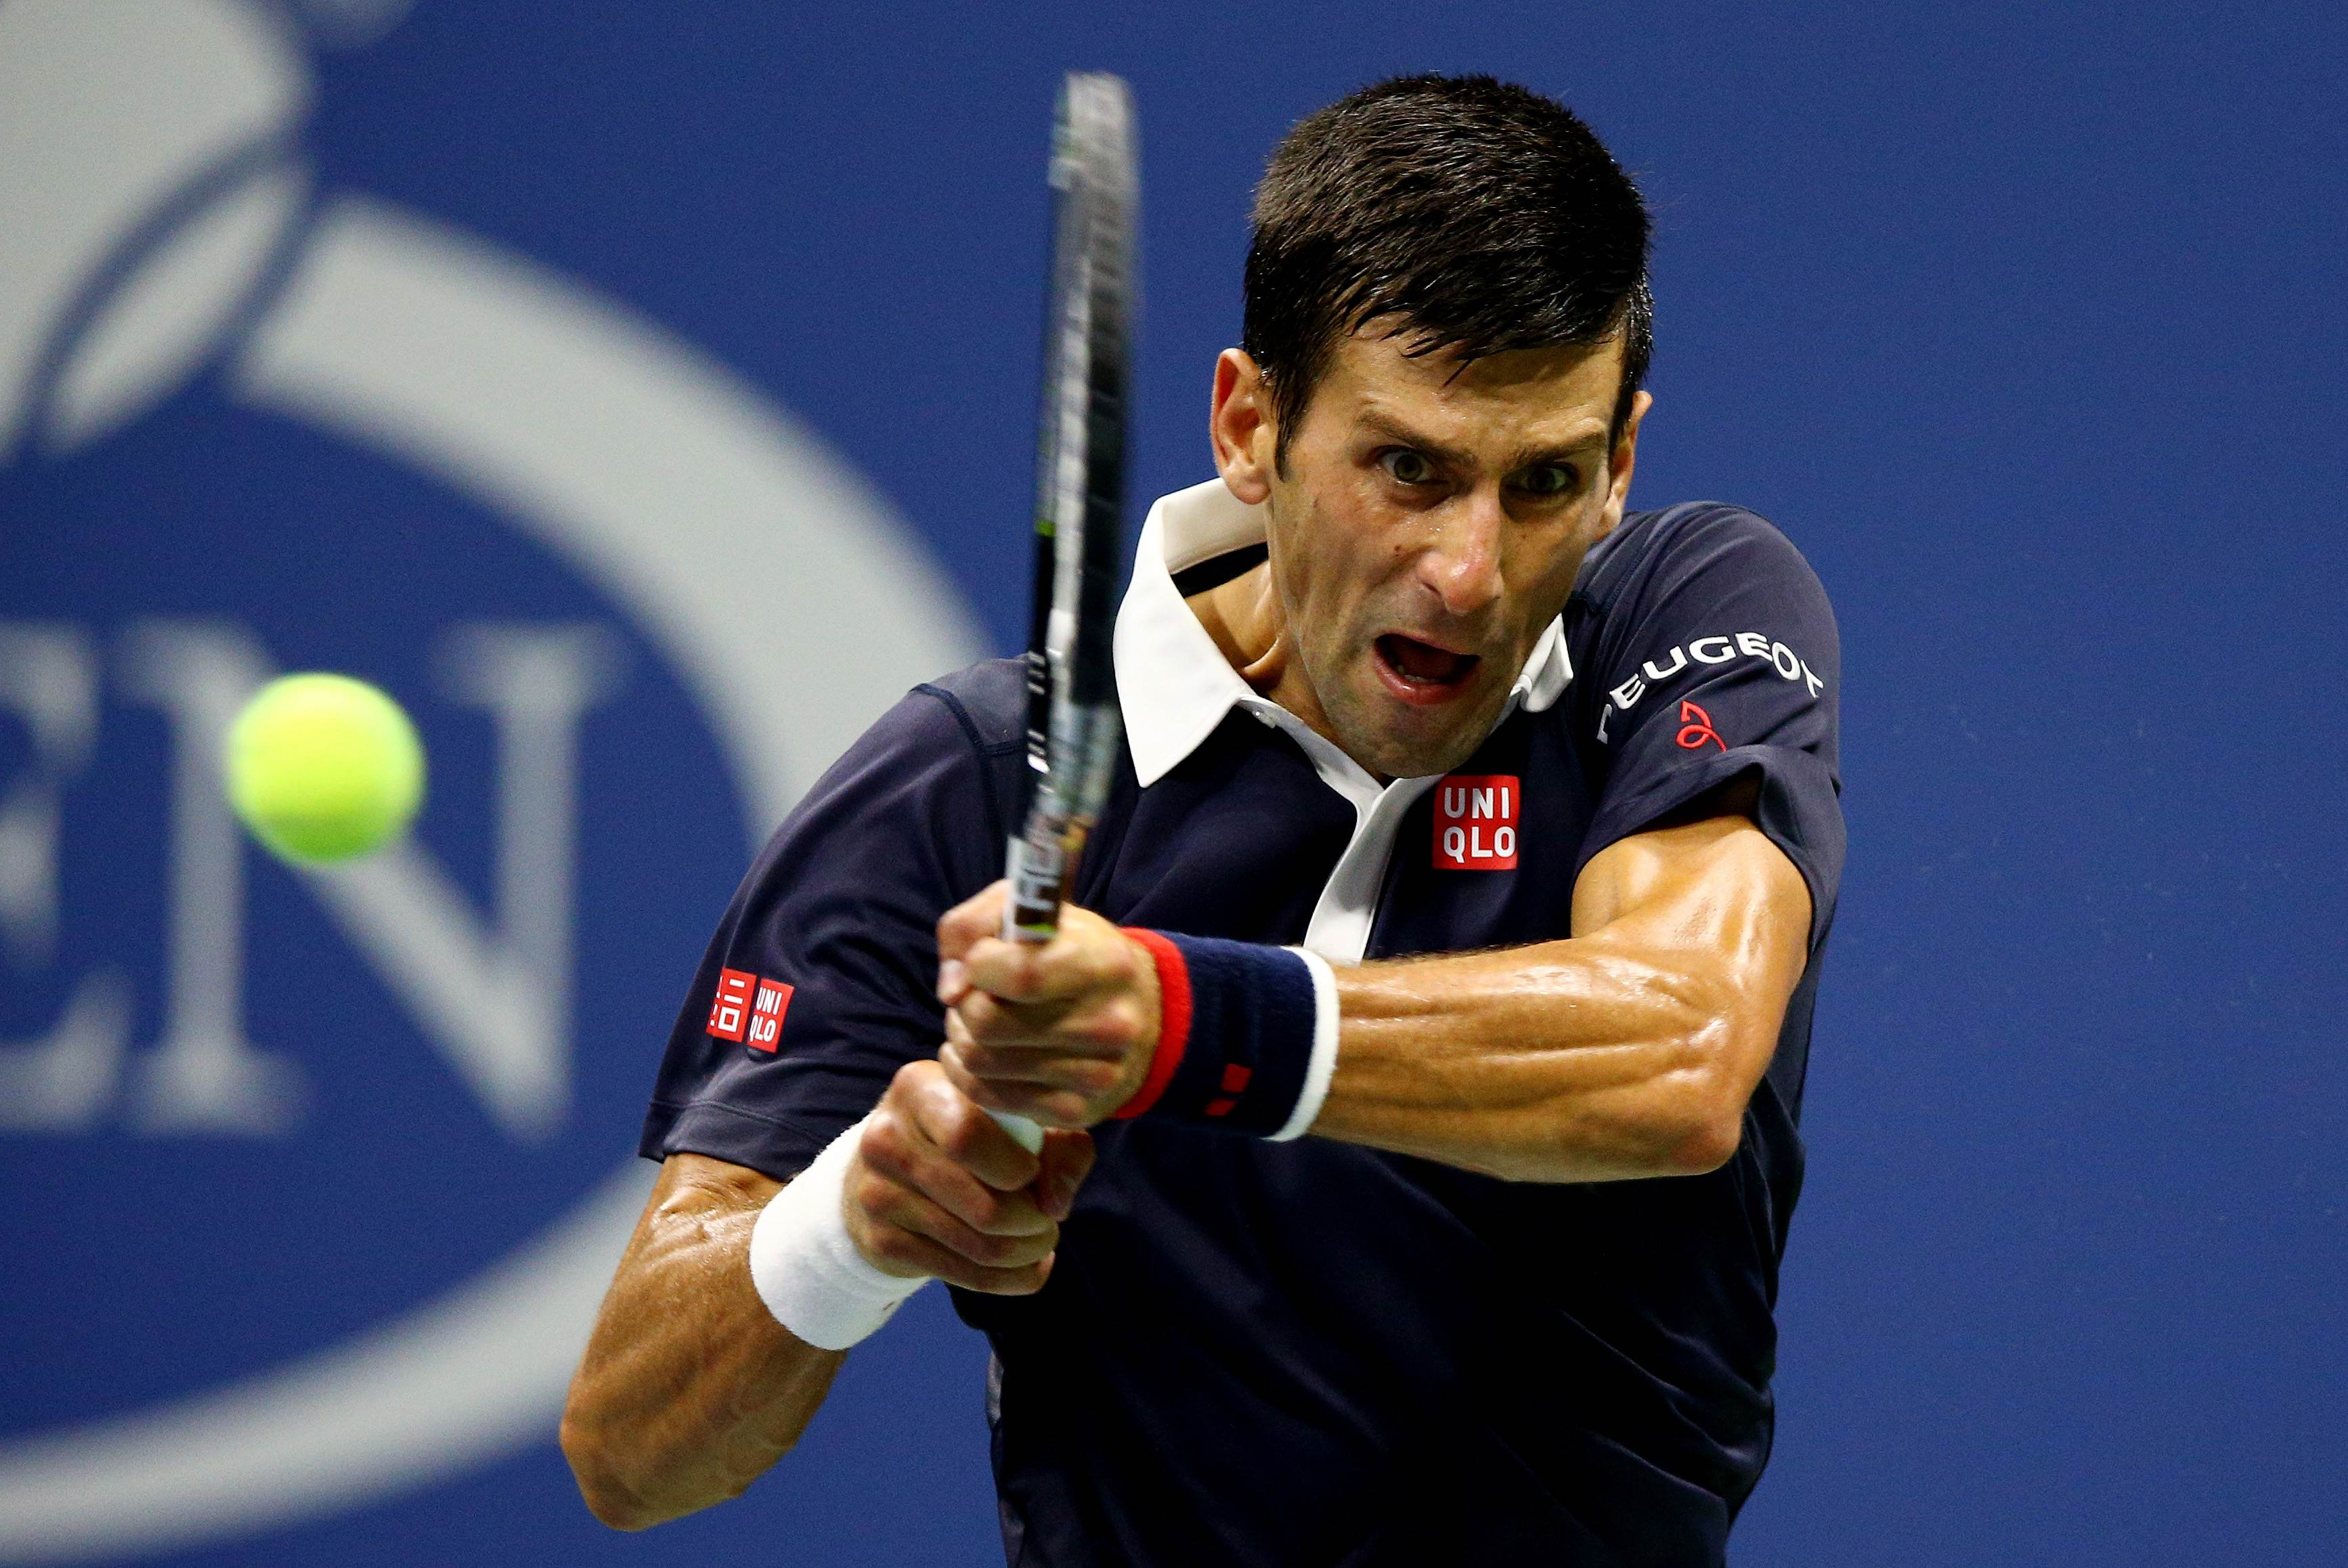 NEW YORK, NY - SEPTEMBER 08: Novak Djokovic of Serbia returns a shot to Feliciano Lopez of Spain during their Men's Singles Quarterfinals match on Day Nine of the 2015 US Open at the USTA Billie Jean King National Tennis Center on September 8, 2015 in the Flushing neighborhood of the Queens borough of New York City. Clive Brunskill/Getty Images/AFP == FOR NEWSPAPERS, INTERNET, TELCOS & TELEVISION USE ONLY ==